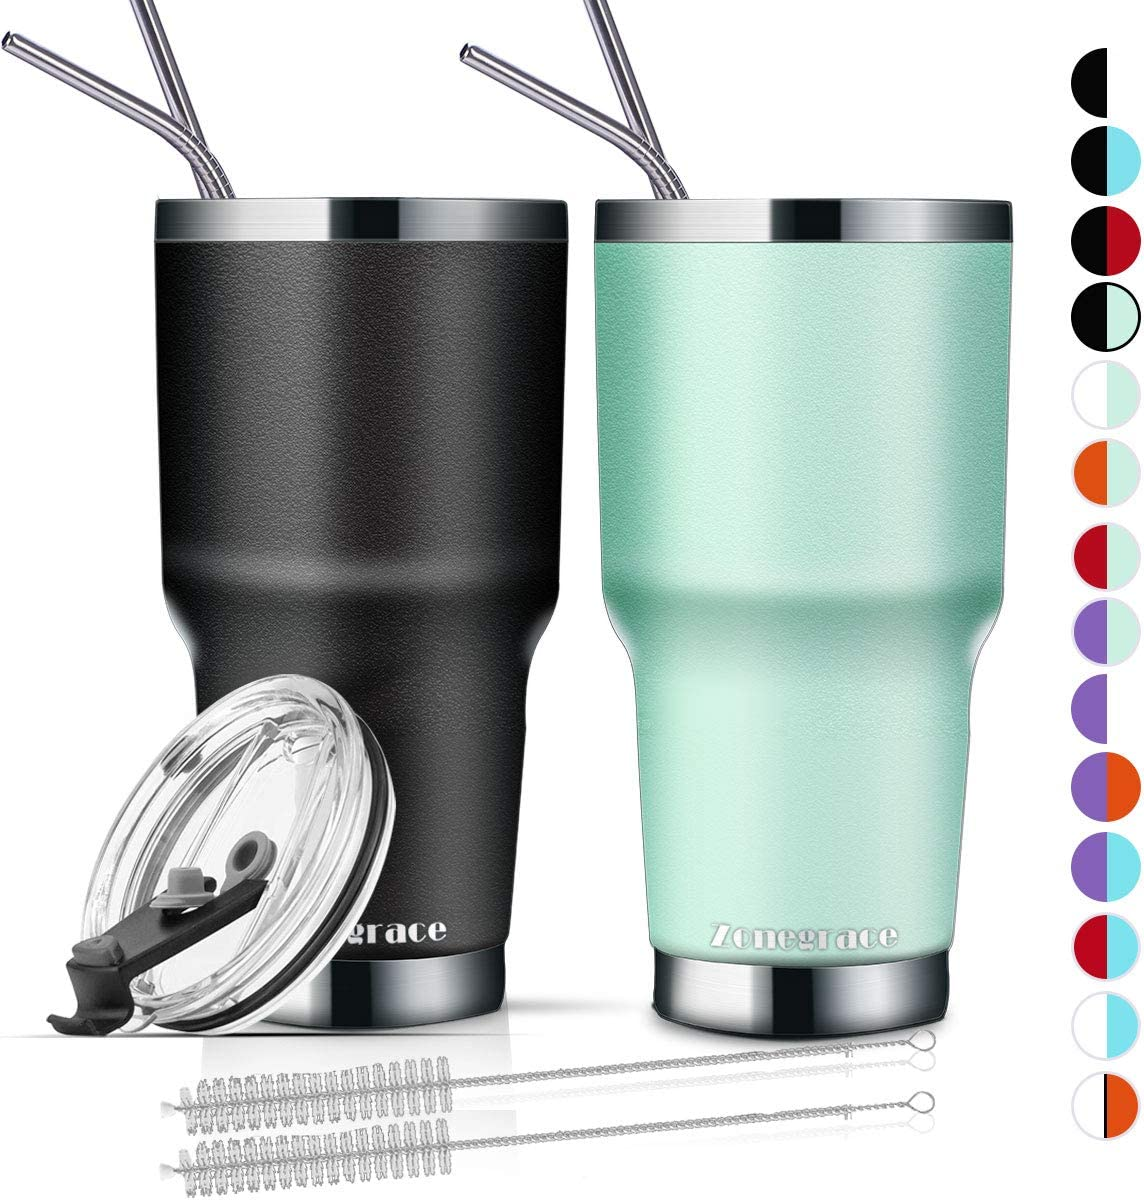 Zonegrace 2 Pack 30oz Insulated Tumbler cups with Lids and Straw, Stainless Steel Vacuum Double Wall Travel Tumbler, Durable Insulated Coffee Travel Mug, Thermal Cup with Splash Proof Sliding lids